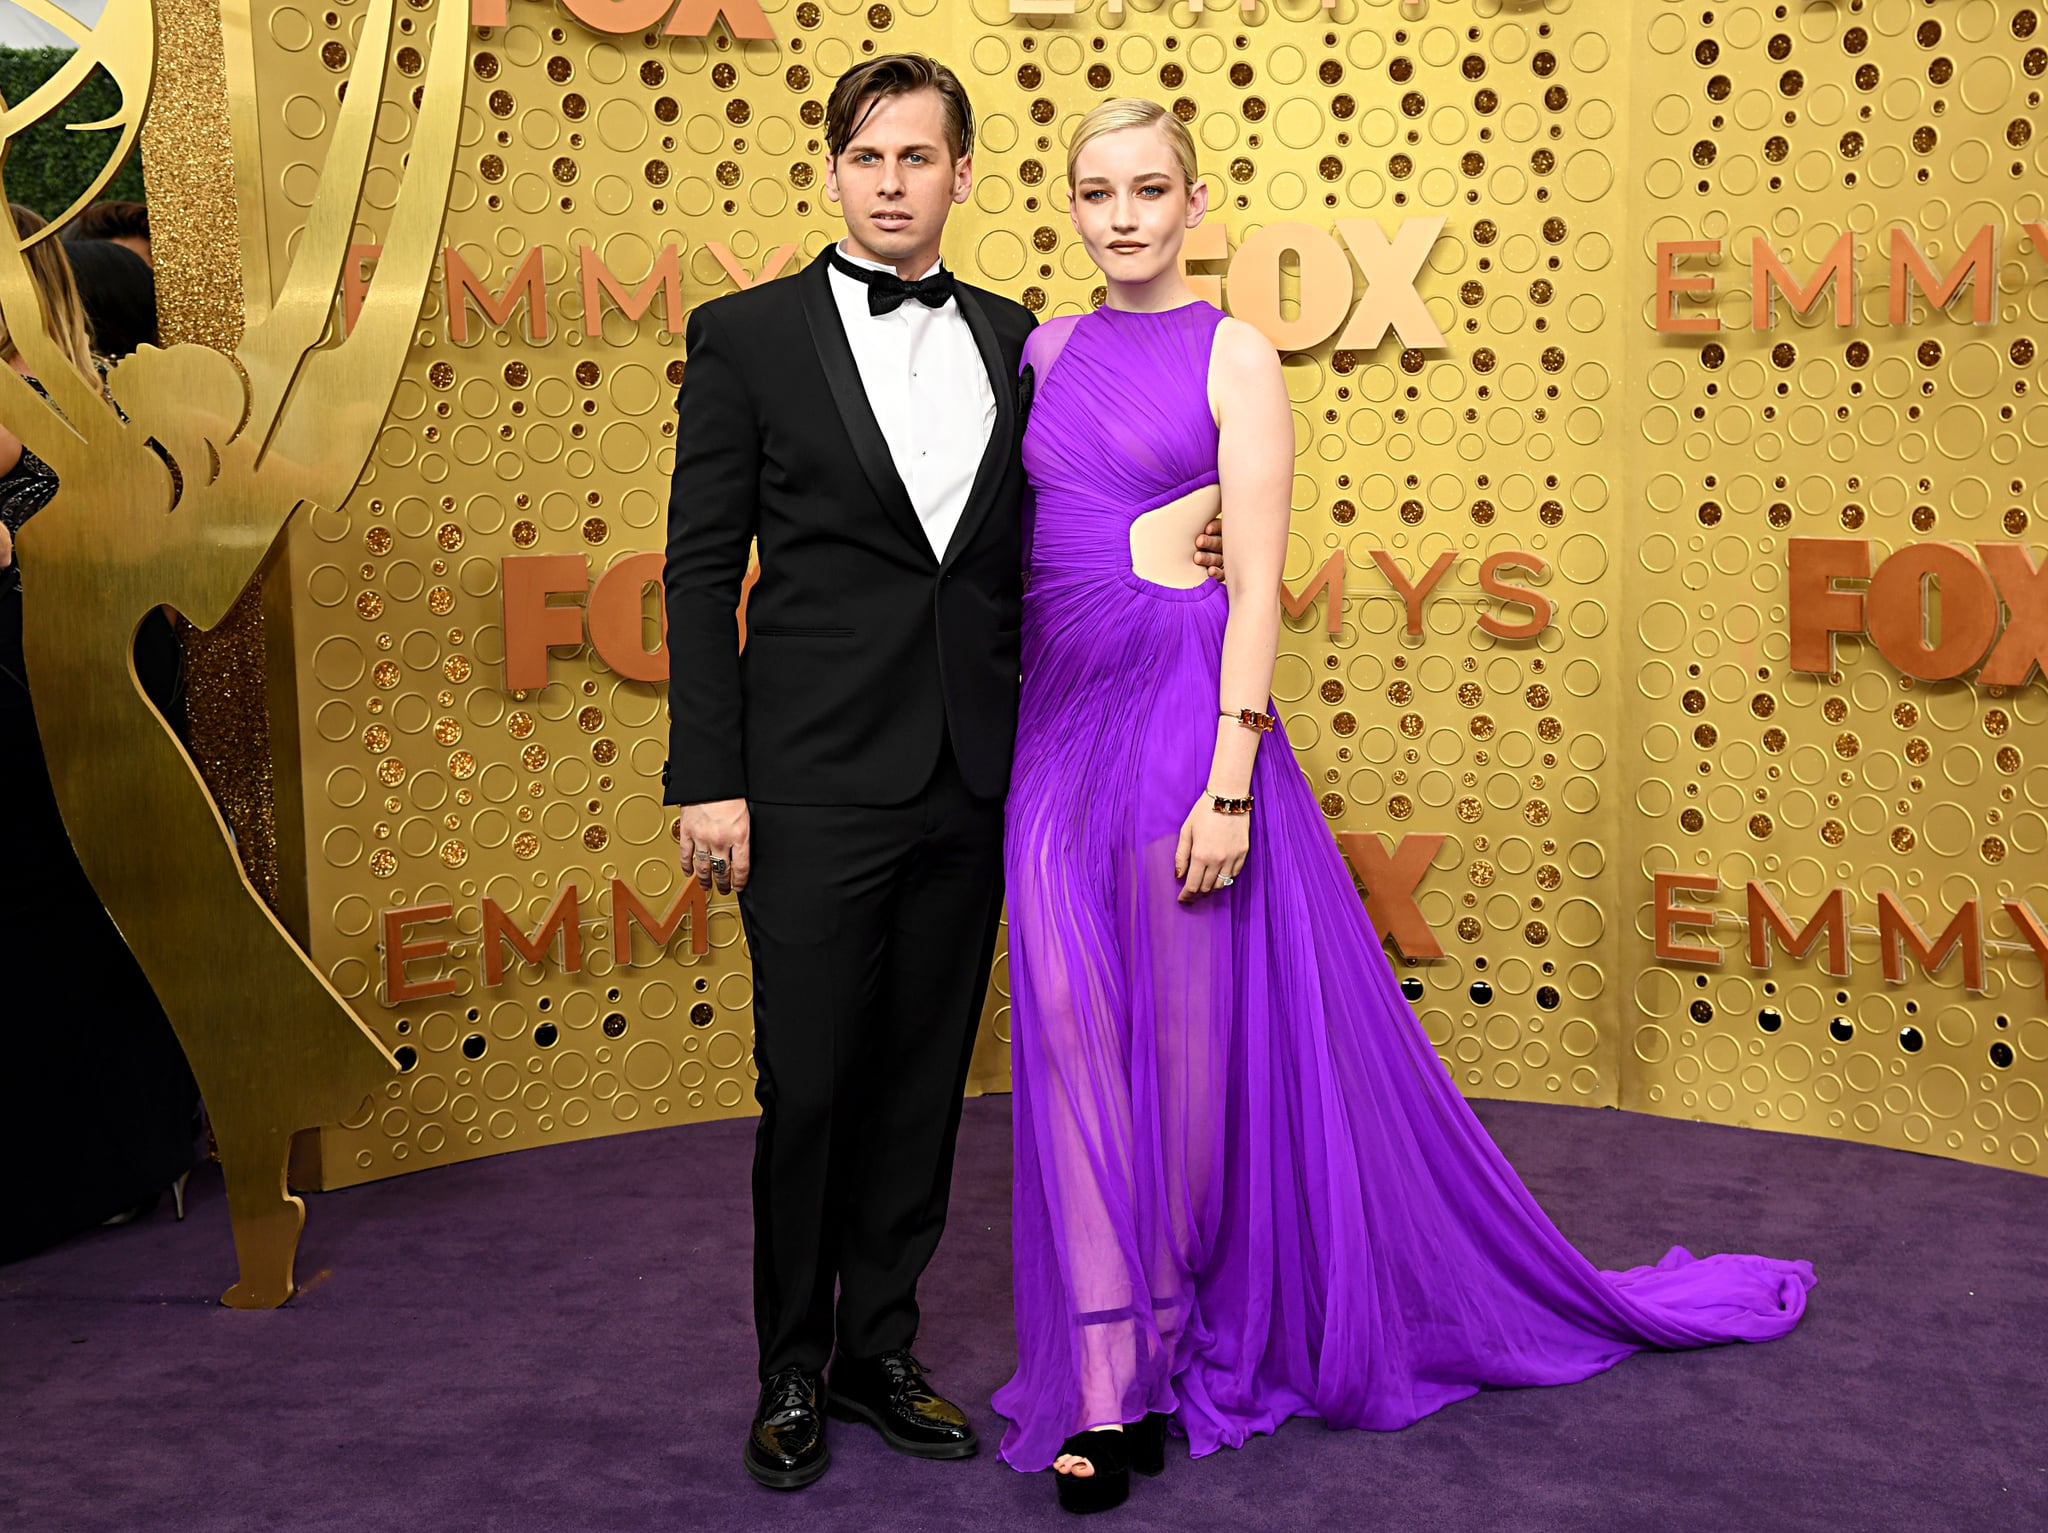 LOS ANGELES, CALIFORNIA - SEPTEMBER 22: (L-R) Mark Foster and Julia Garner attend the 71st Emmy Awards at Microsoft Theatre on September 22, 2019 in Los Angeles, California. (Photo by Jeff Kravitz/FilmMagic)